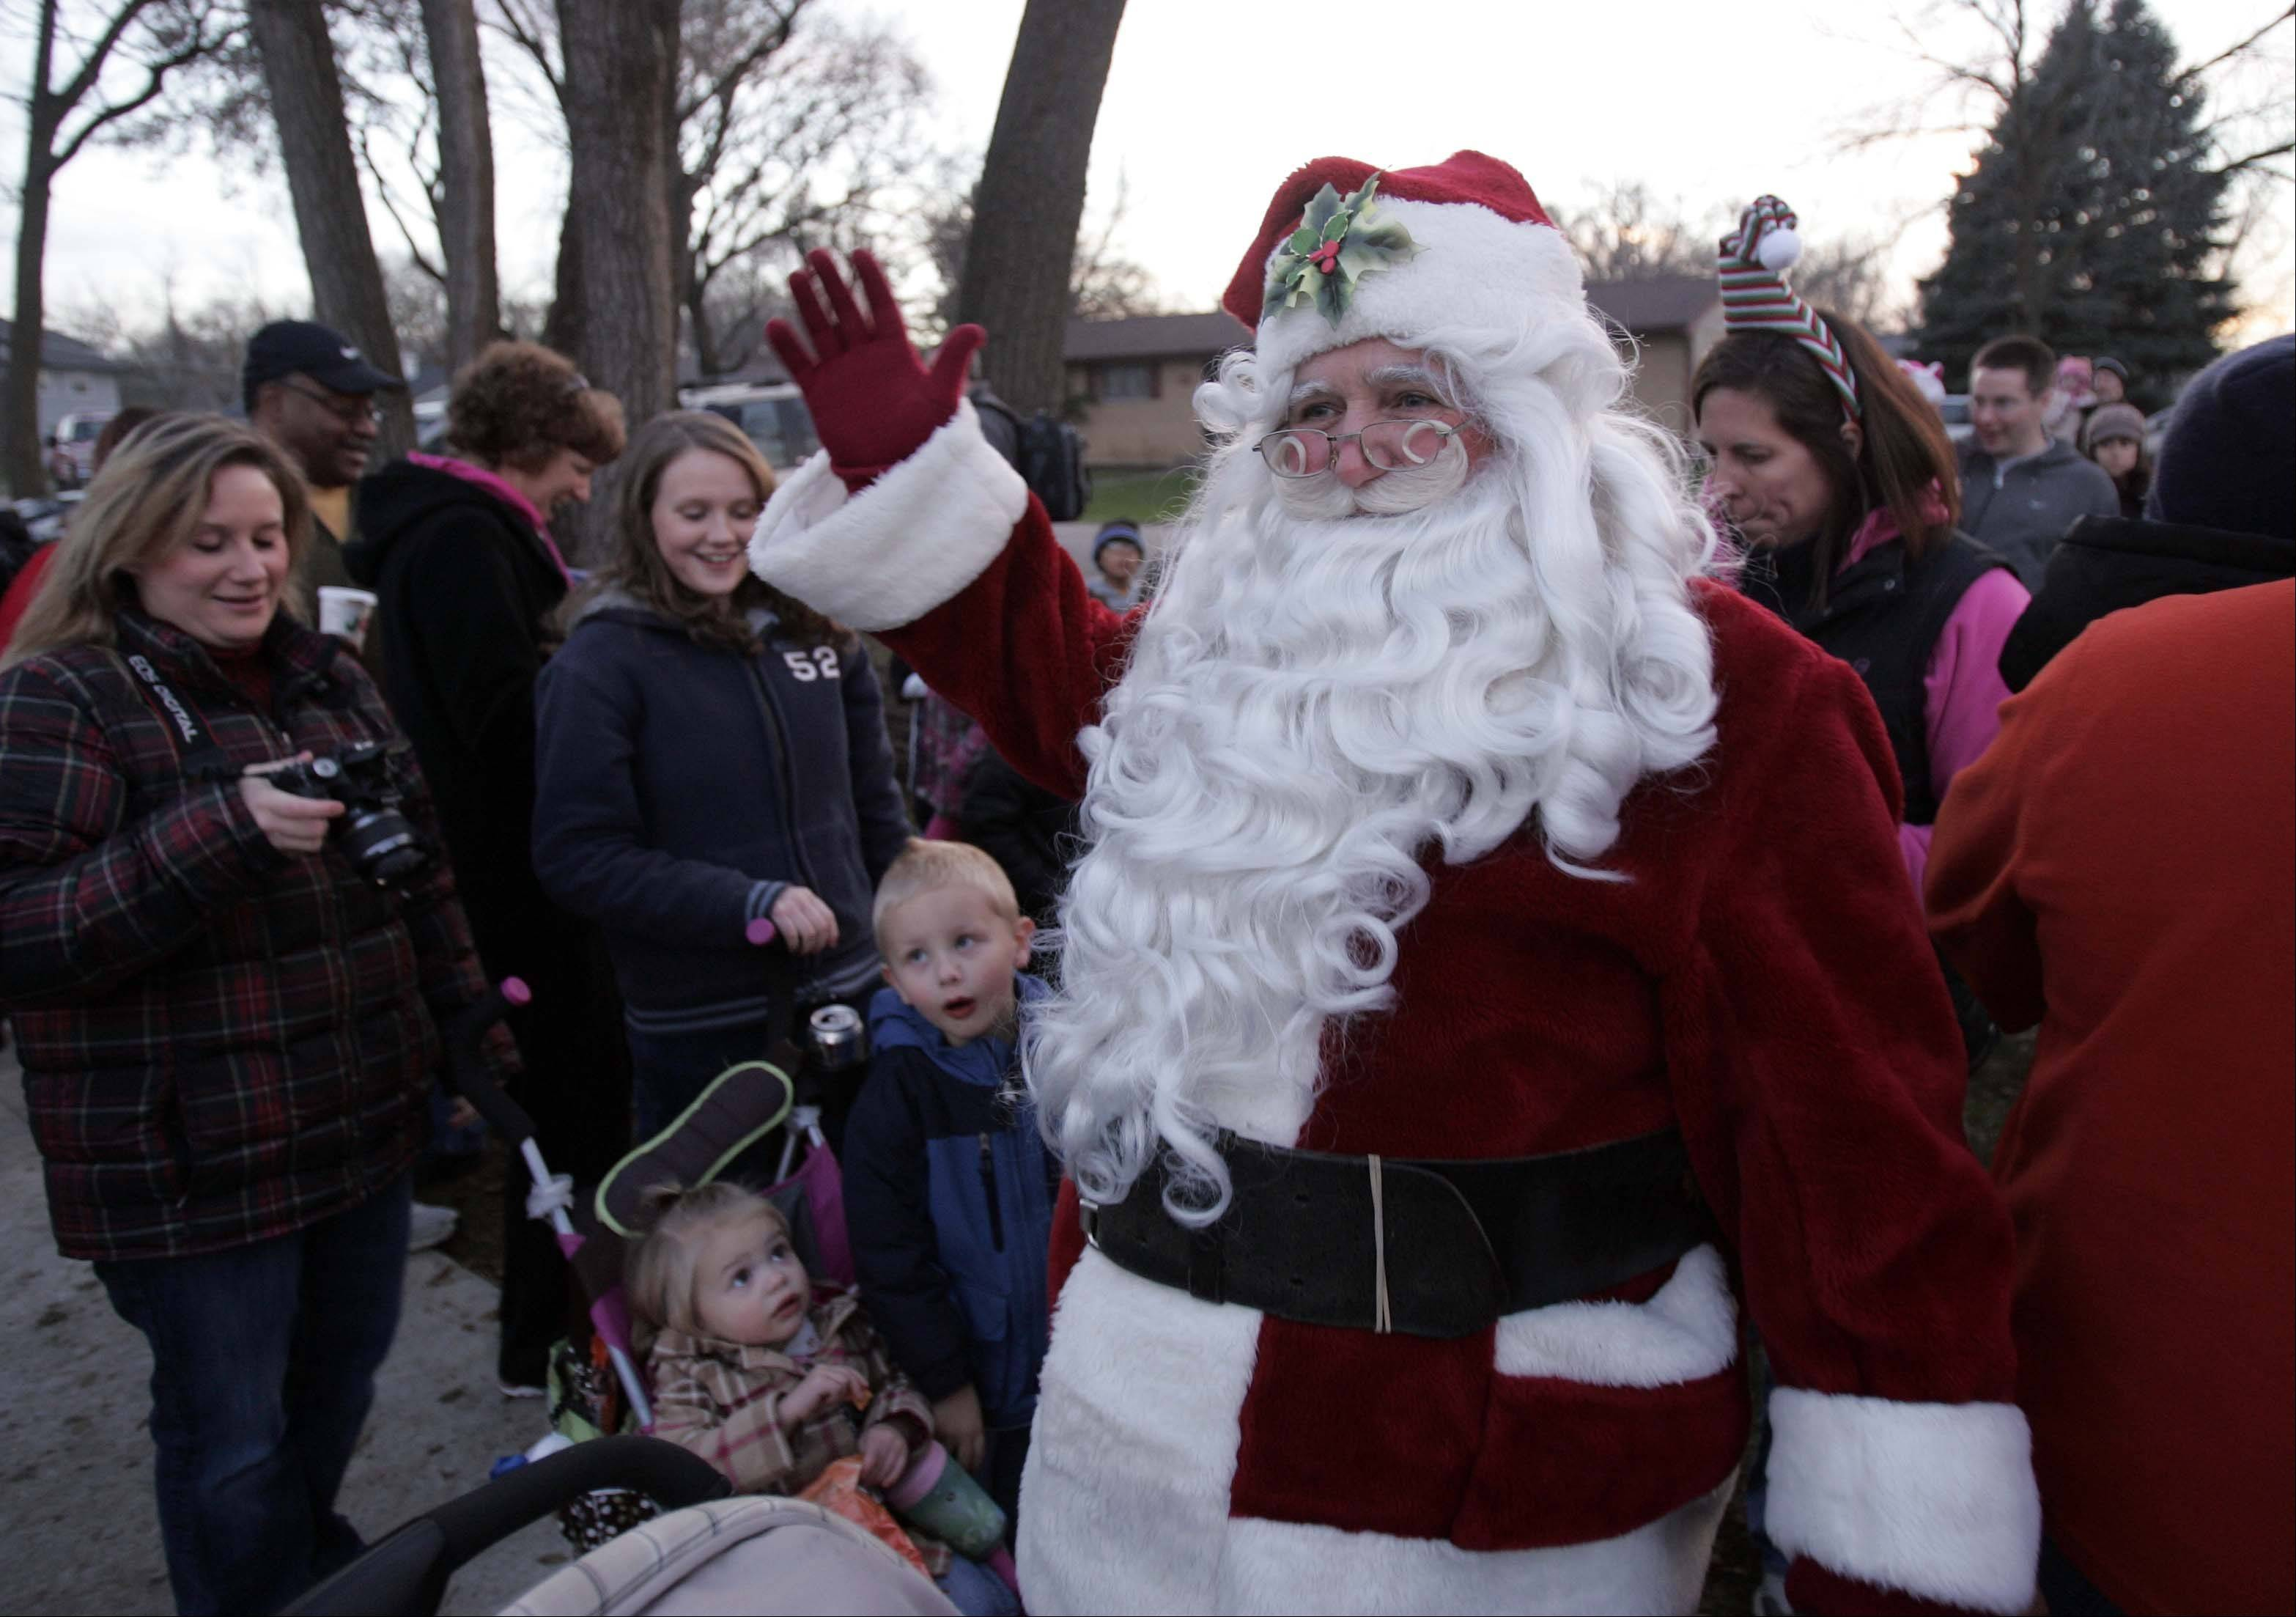 Santa waves to the crowd after arriving at An Almost Winter Day at SEBA Park in South Elgin last year.